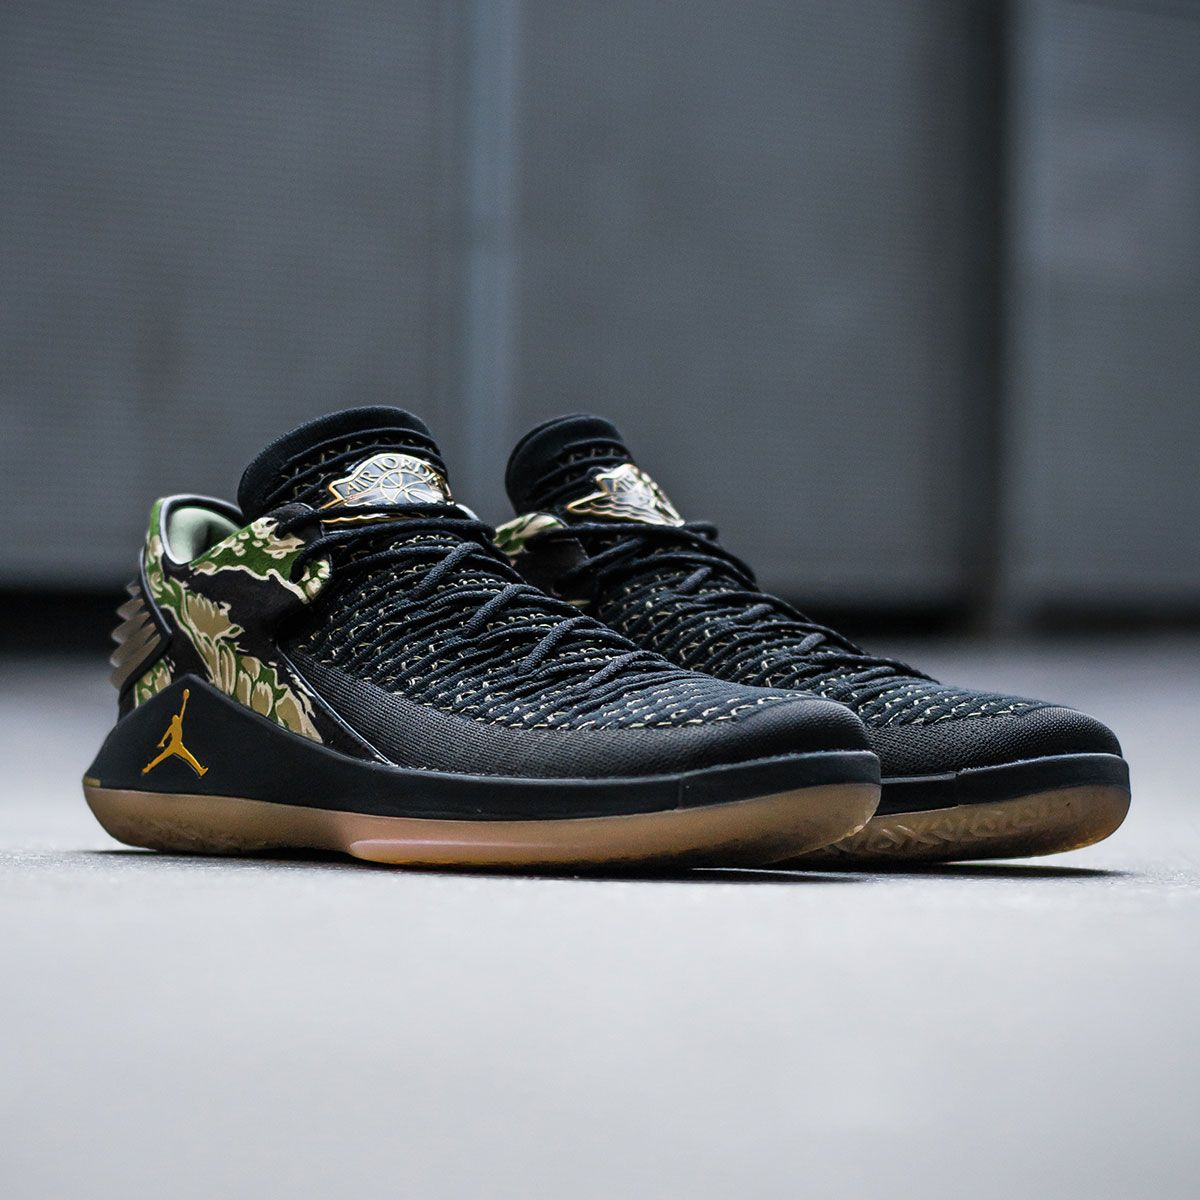 huge selection of d586e 252bd These black Air Jordan XXXII Low with tiger camo around the heel and golden  accents are available now on KICKZ.com and in selected stores!